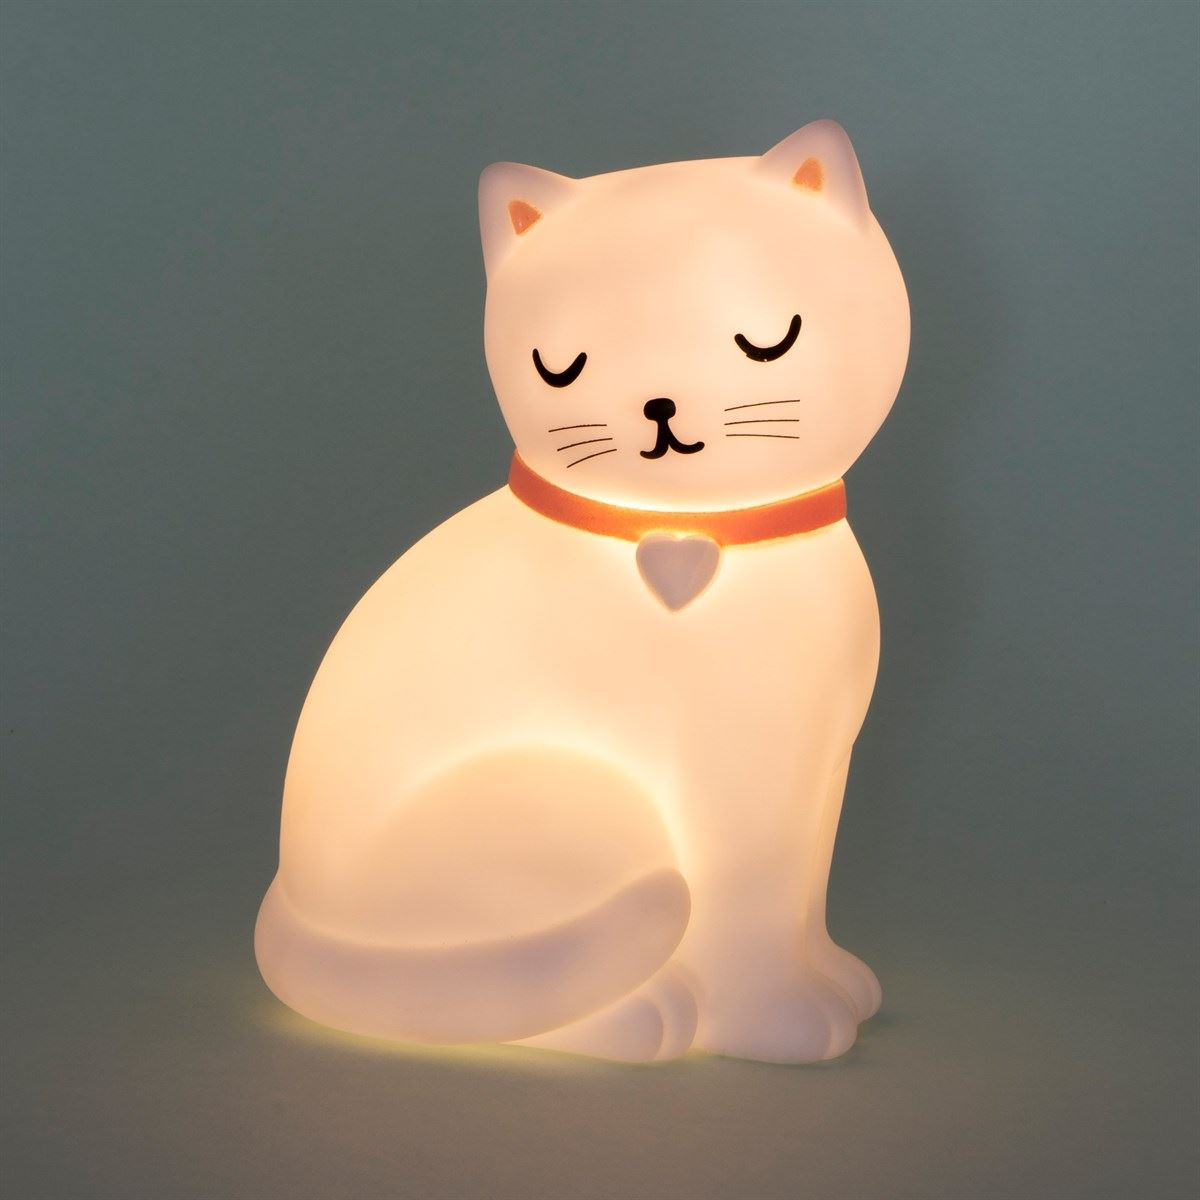 Childrens-Kids-Bedroom-LED-Night-Light-Lamp-Batteries-15Min-AutoOff-Unicorn-Cats thumbnail 15